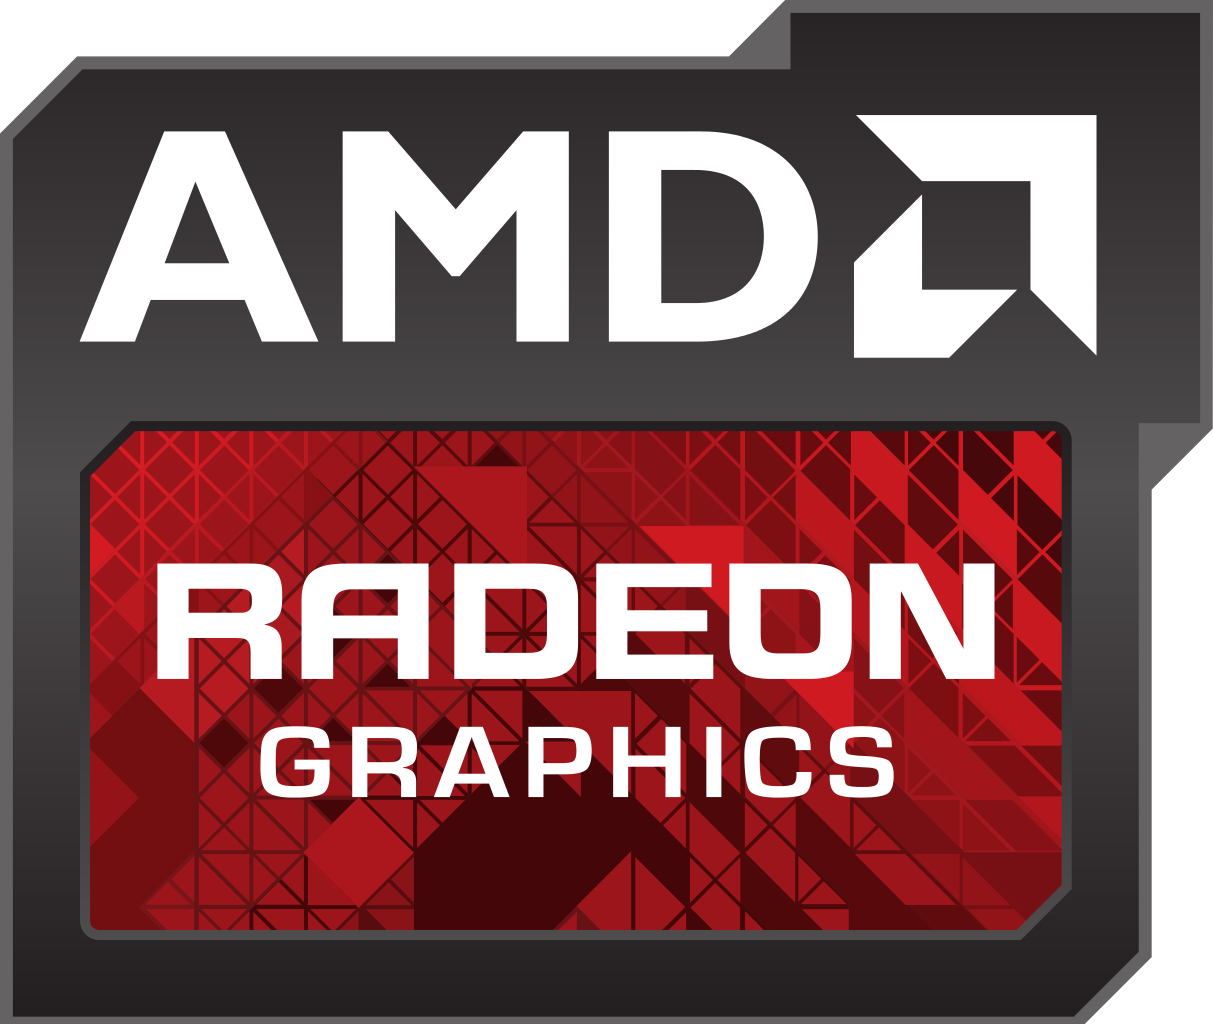 Drawn amd logo 16 480 and performance Software